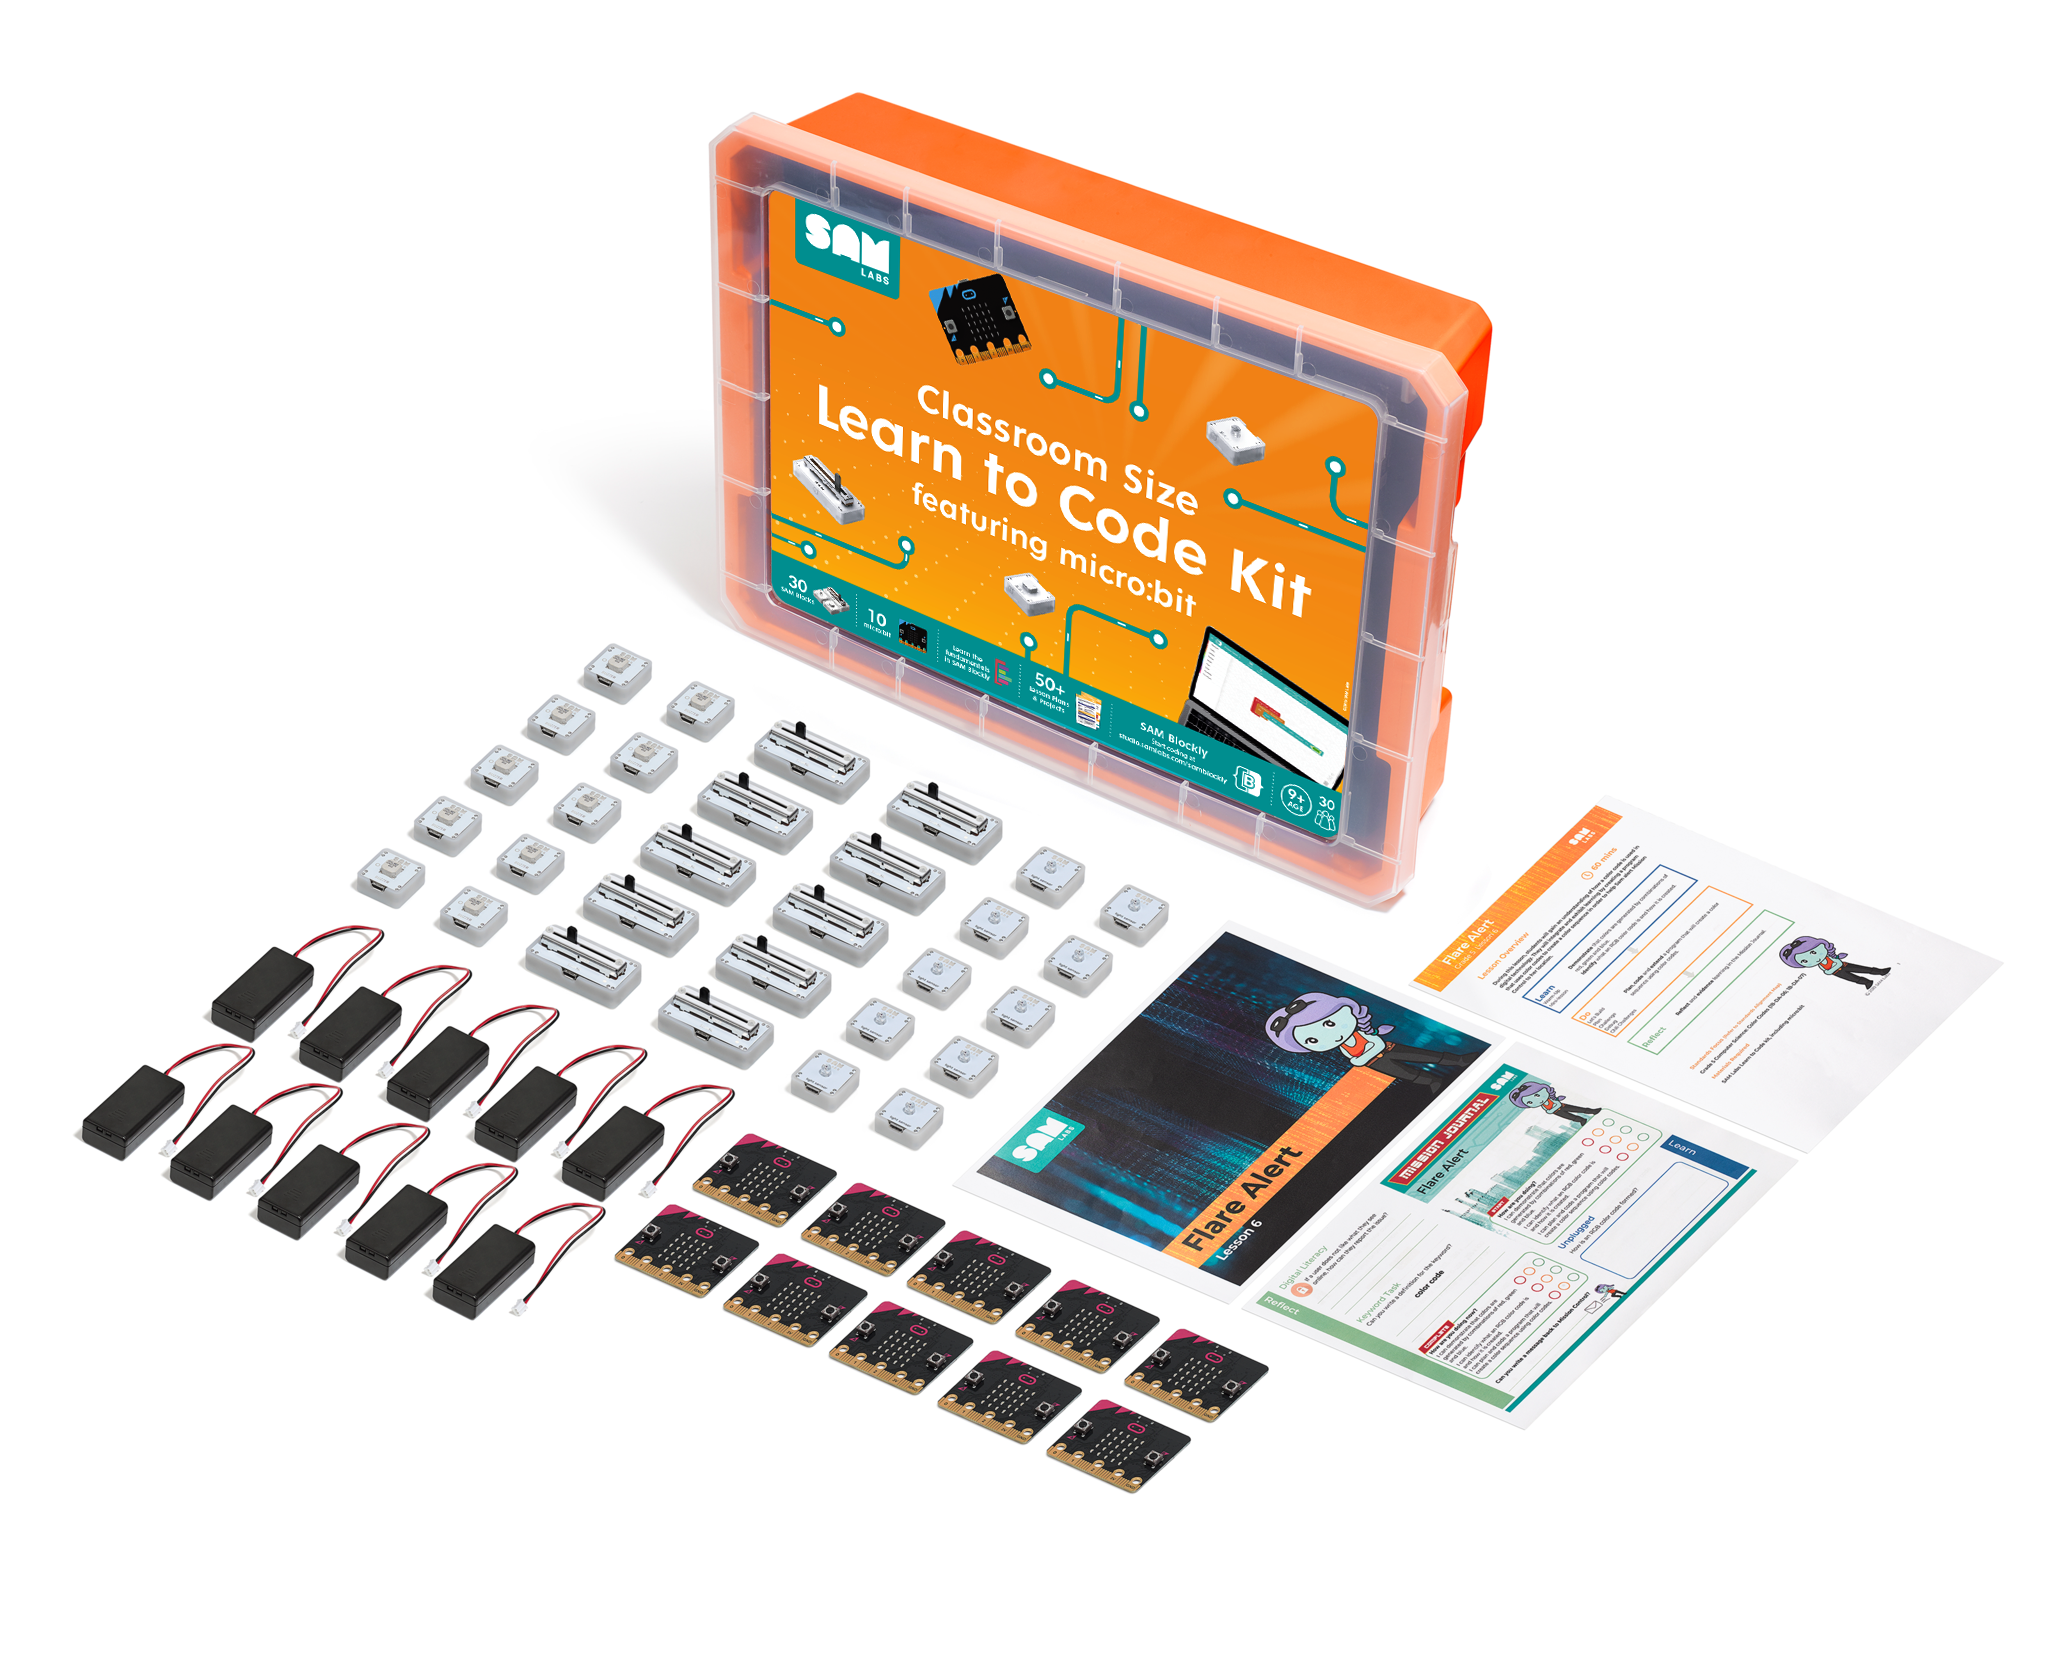 Learn to Code - Classroom Size Kit